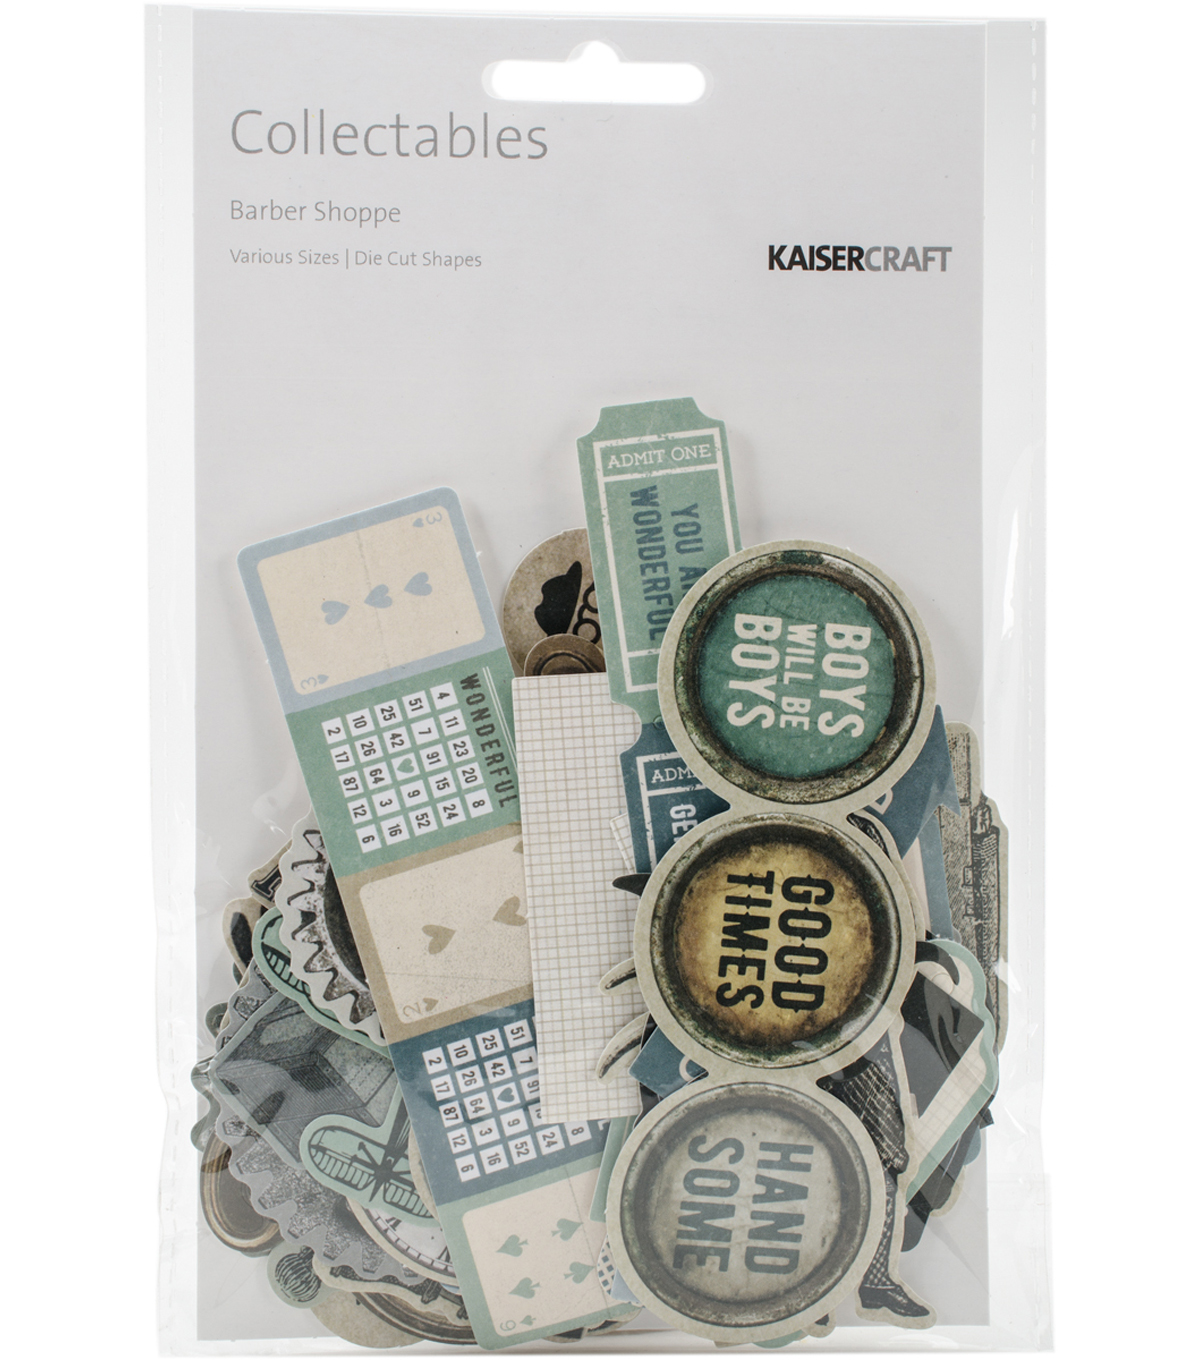 Kaisercraft Collectables Cardstock Die-Cuts-Barber Shoppe